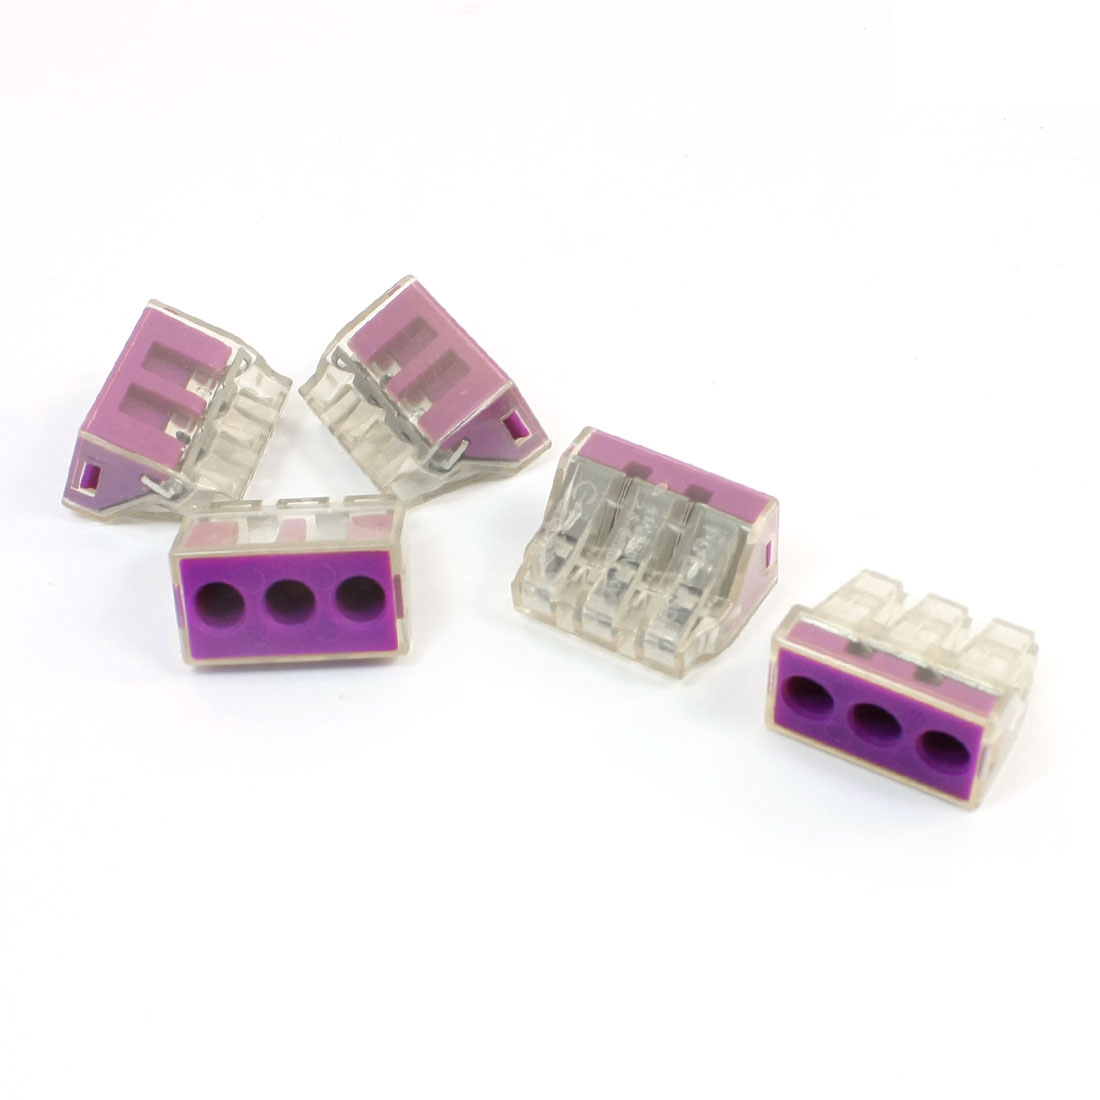 5Pcs-2-5-6mm2-3-Way-Terminal-Block-Push-Wire-Quick-Connector-AC250V-41A